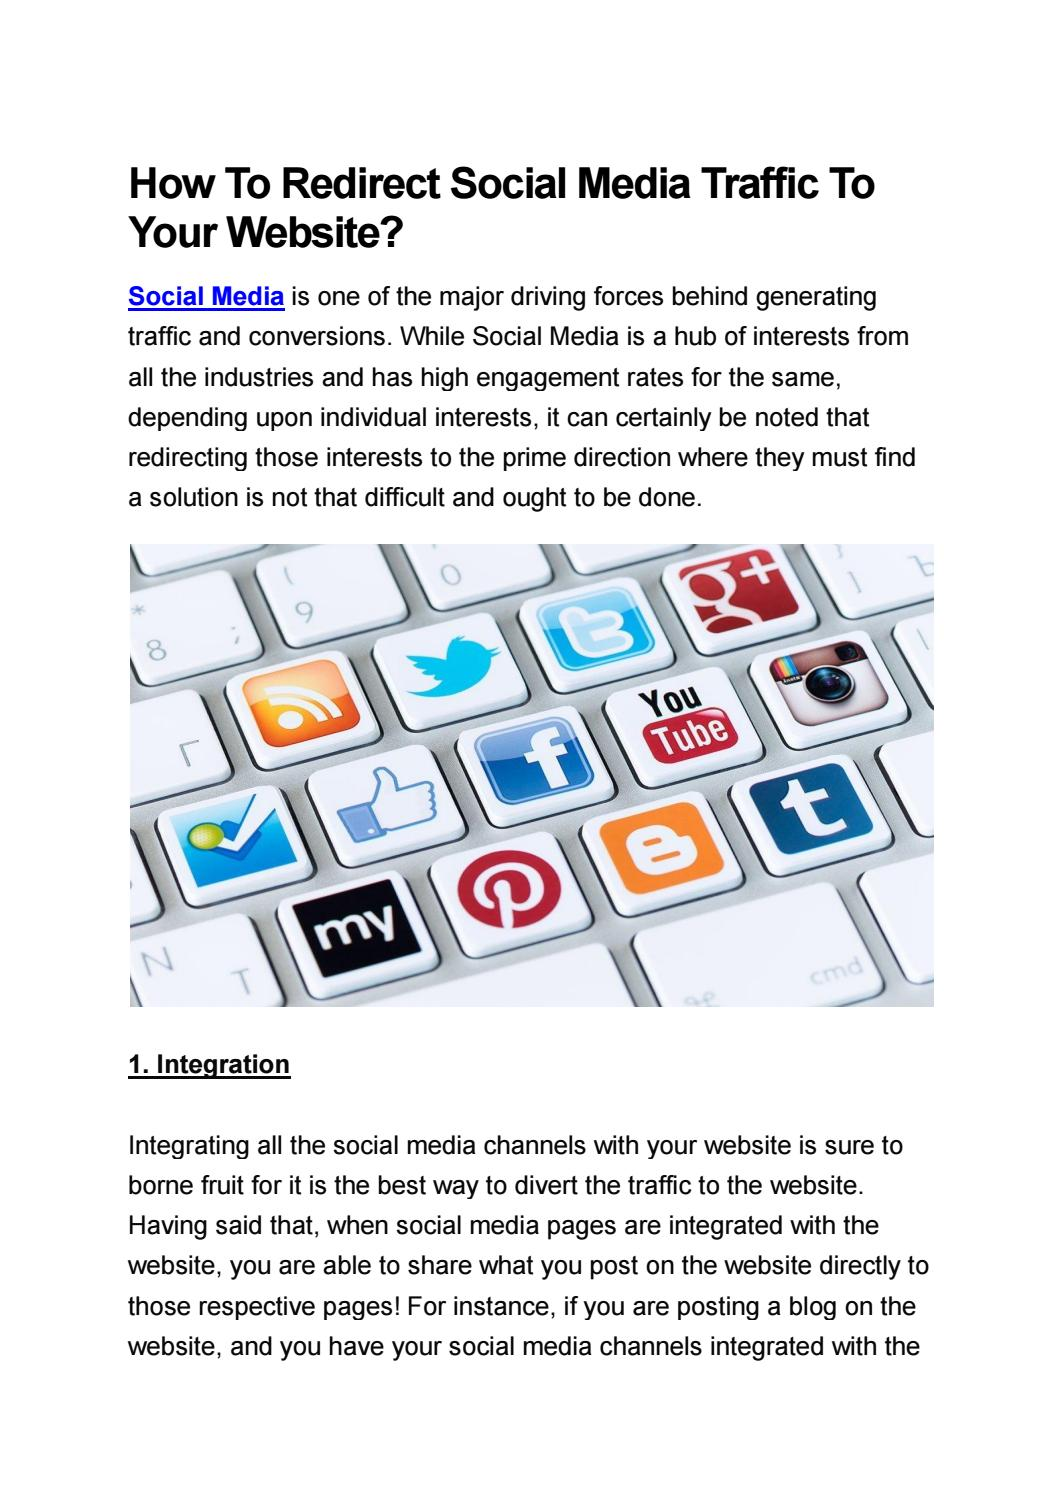 How To Redirect Social Media Traffic To Your Website? by